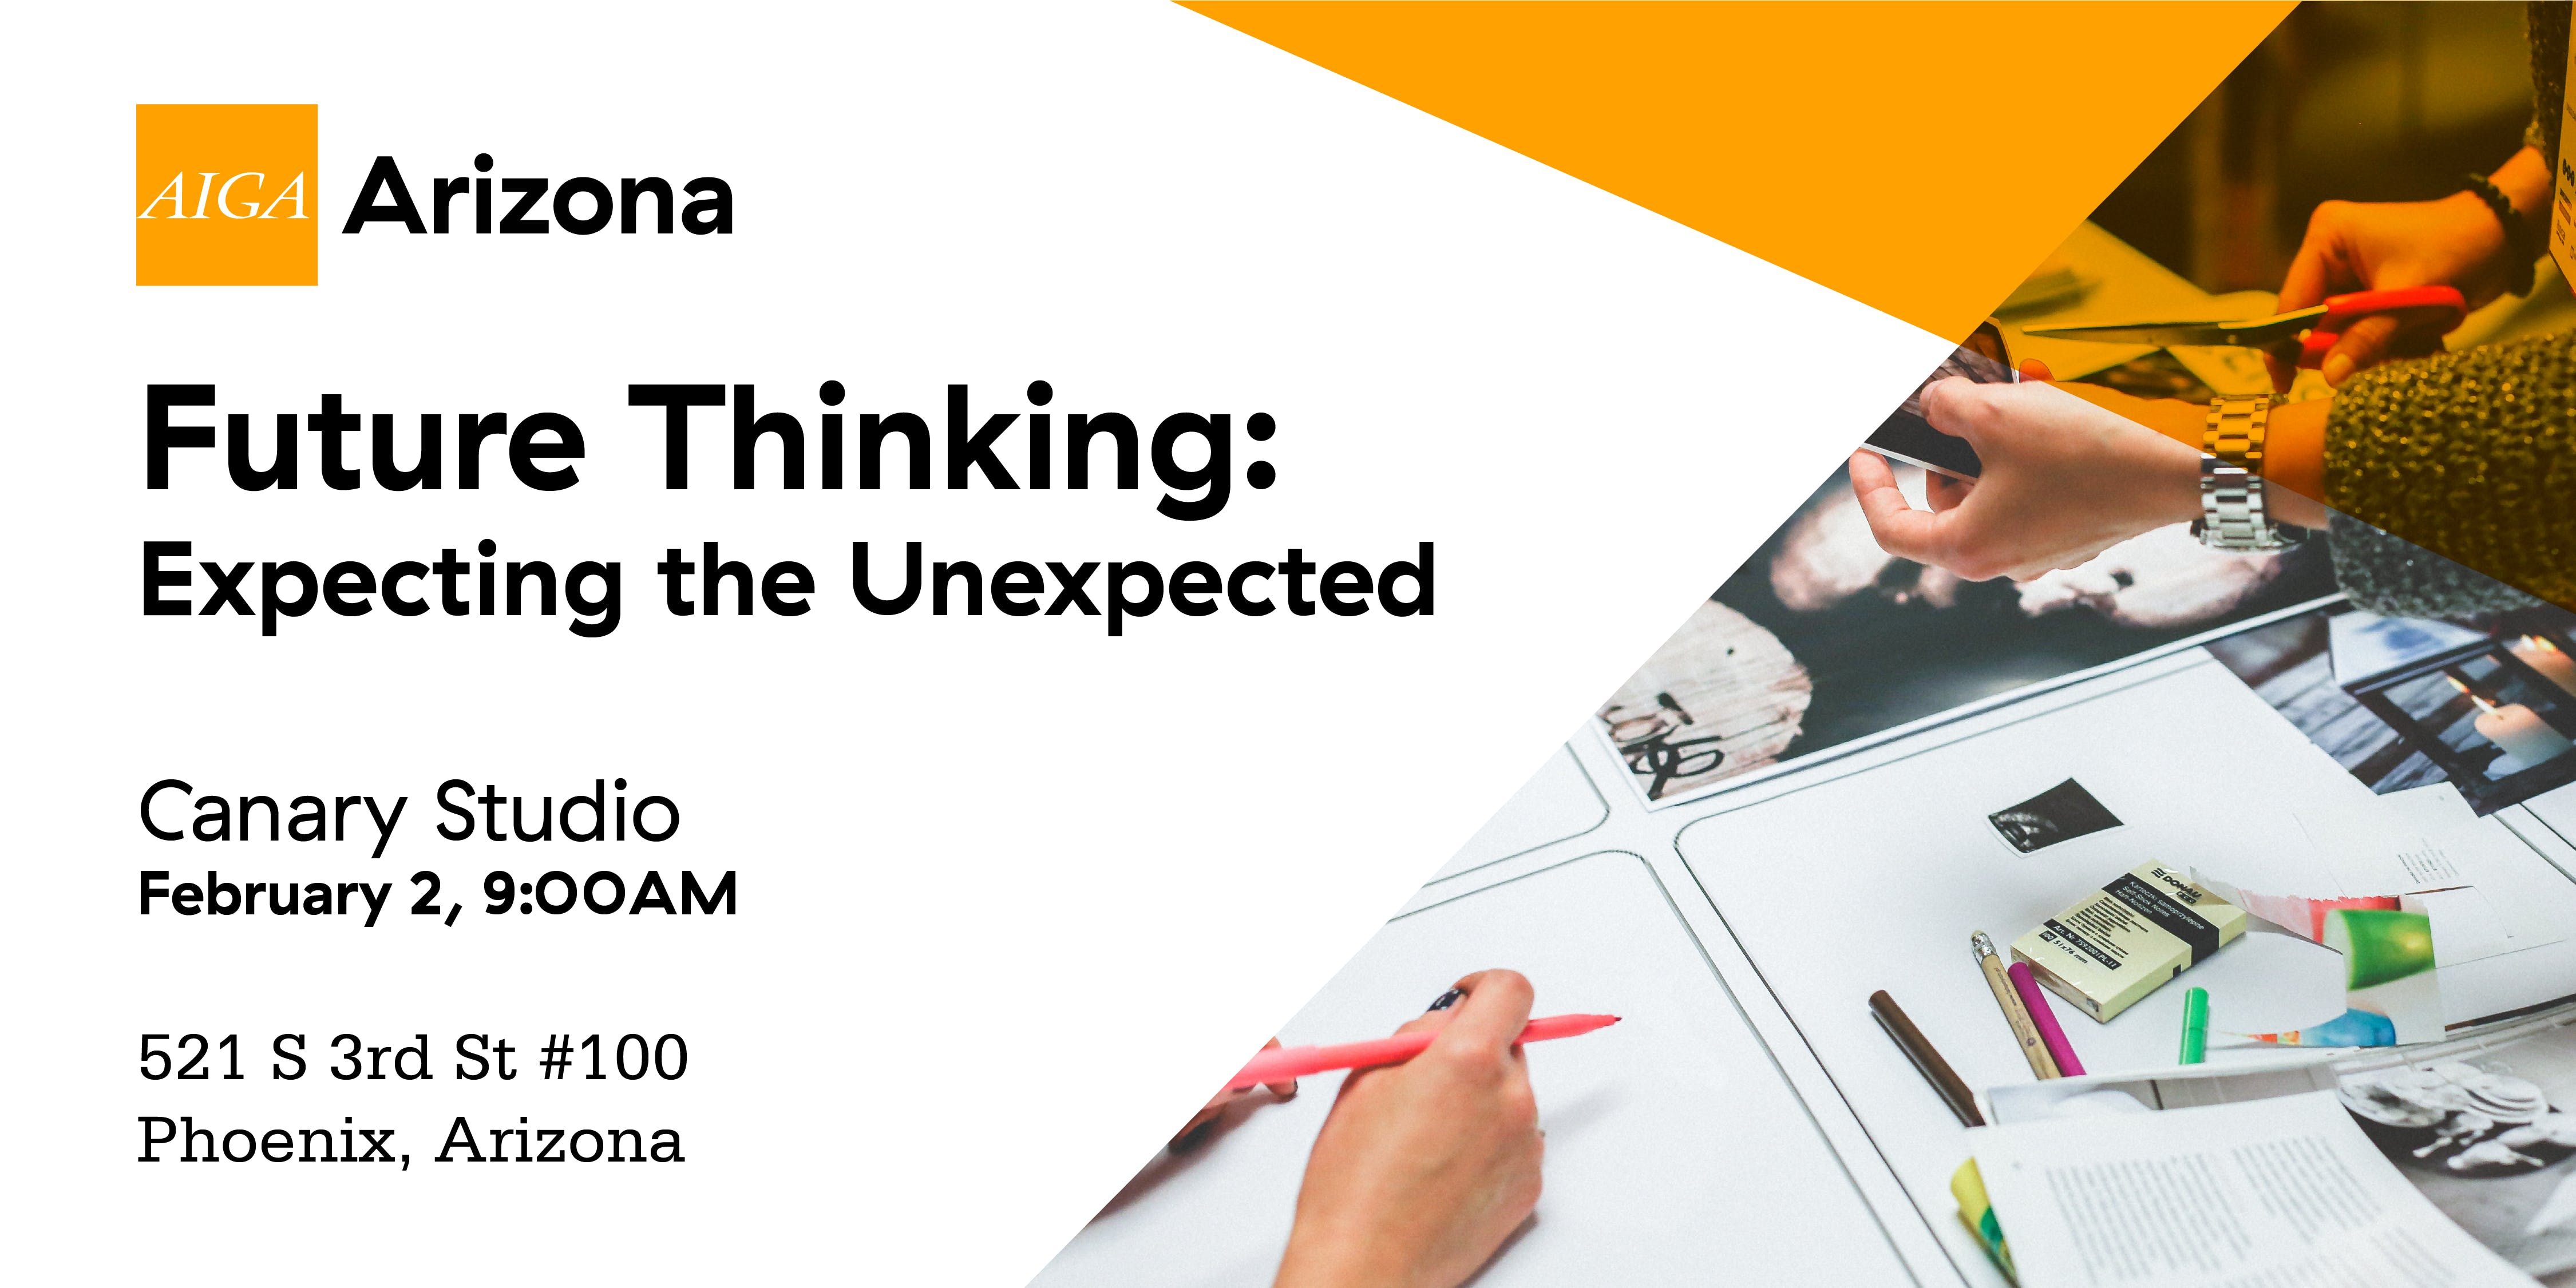 Future Thinking: Expecting the Unexpected